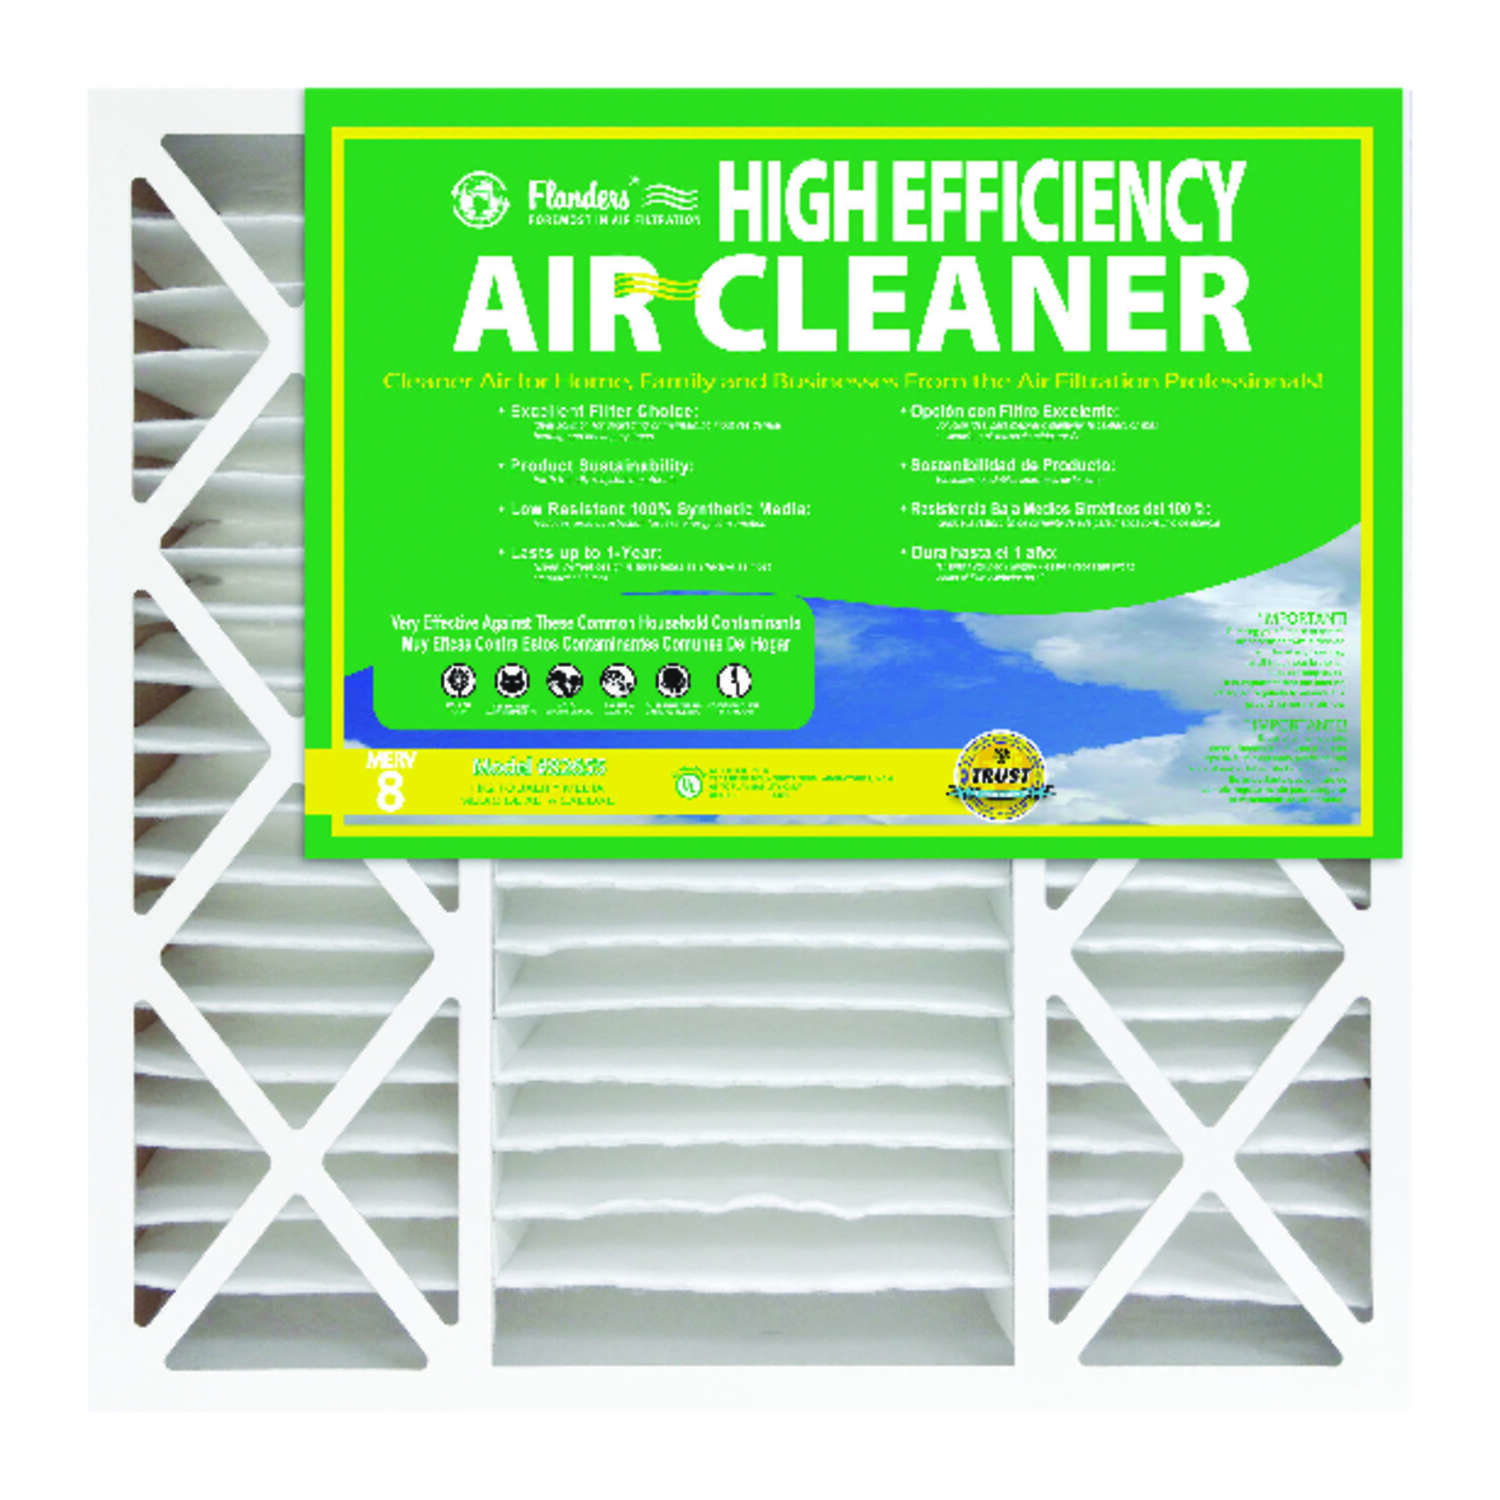 Flanders 16 in. W x 25 in. H x 4-1/2 in. D Polyethylene/Polypropylene 8 MERV Pleated Air Filter